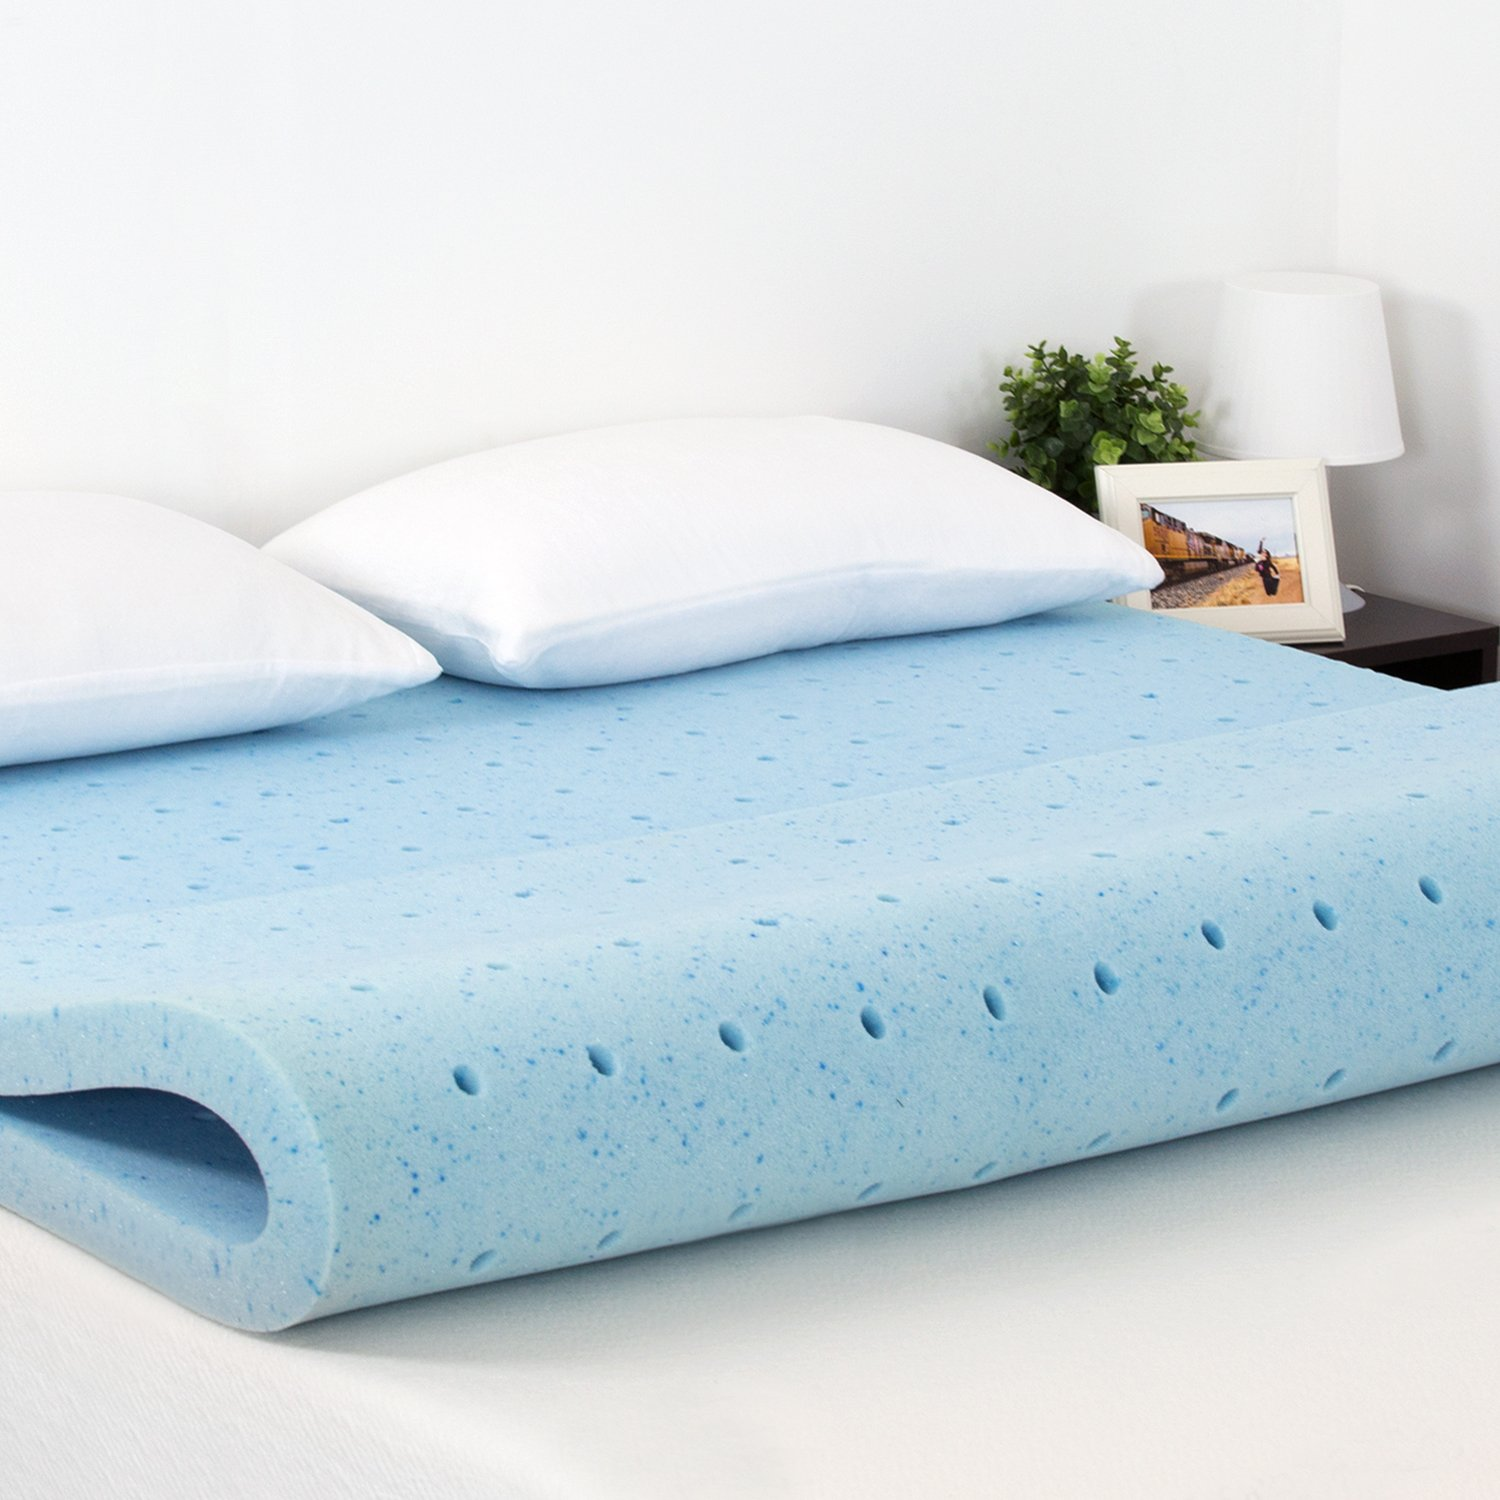 Furinno FT26221TXL 2-inch HD Gel-Infused Conventional Bed Mattress, Twin XL, Blue by Furinno